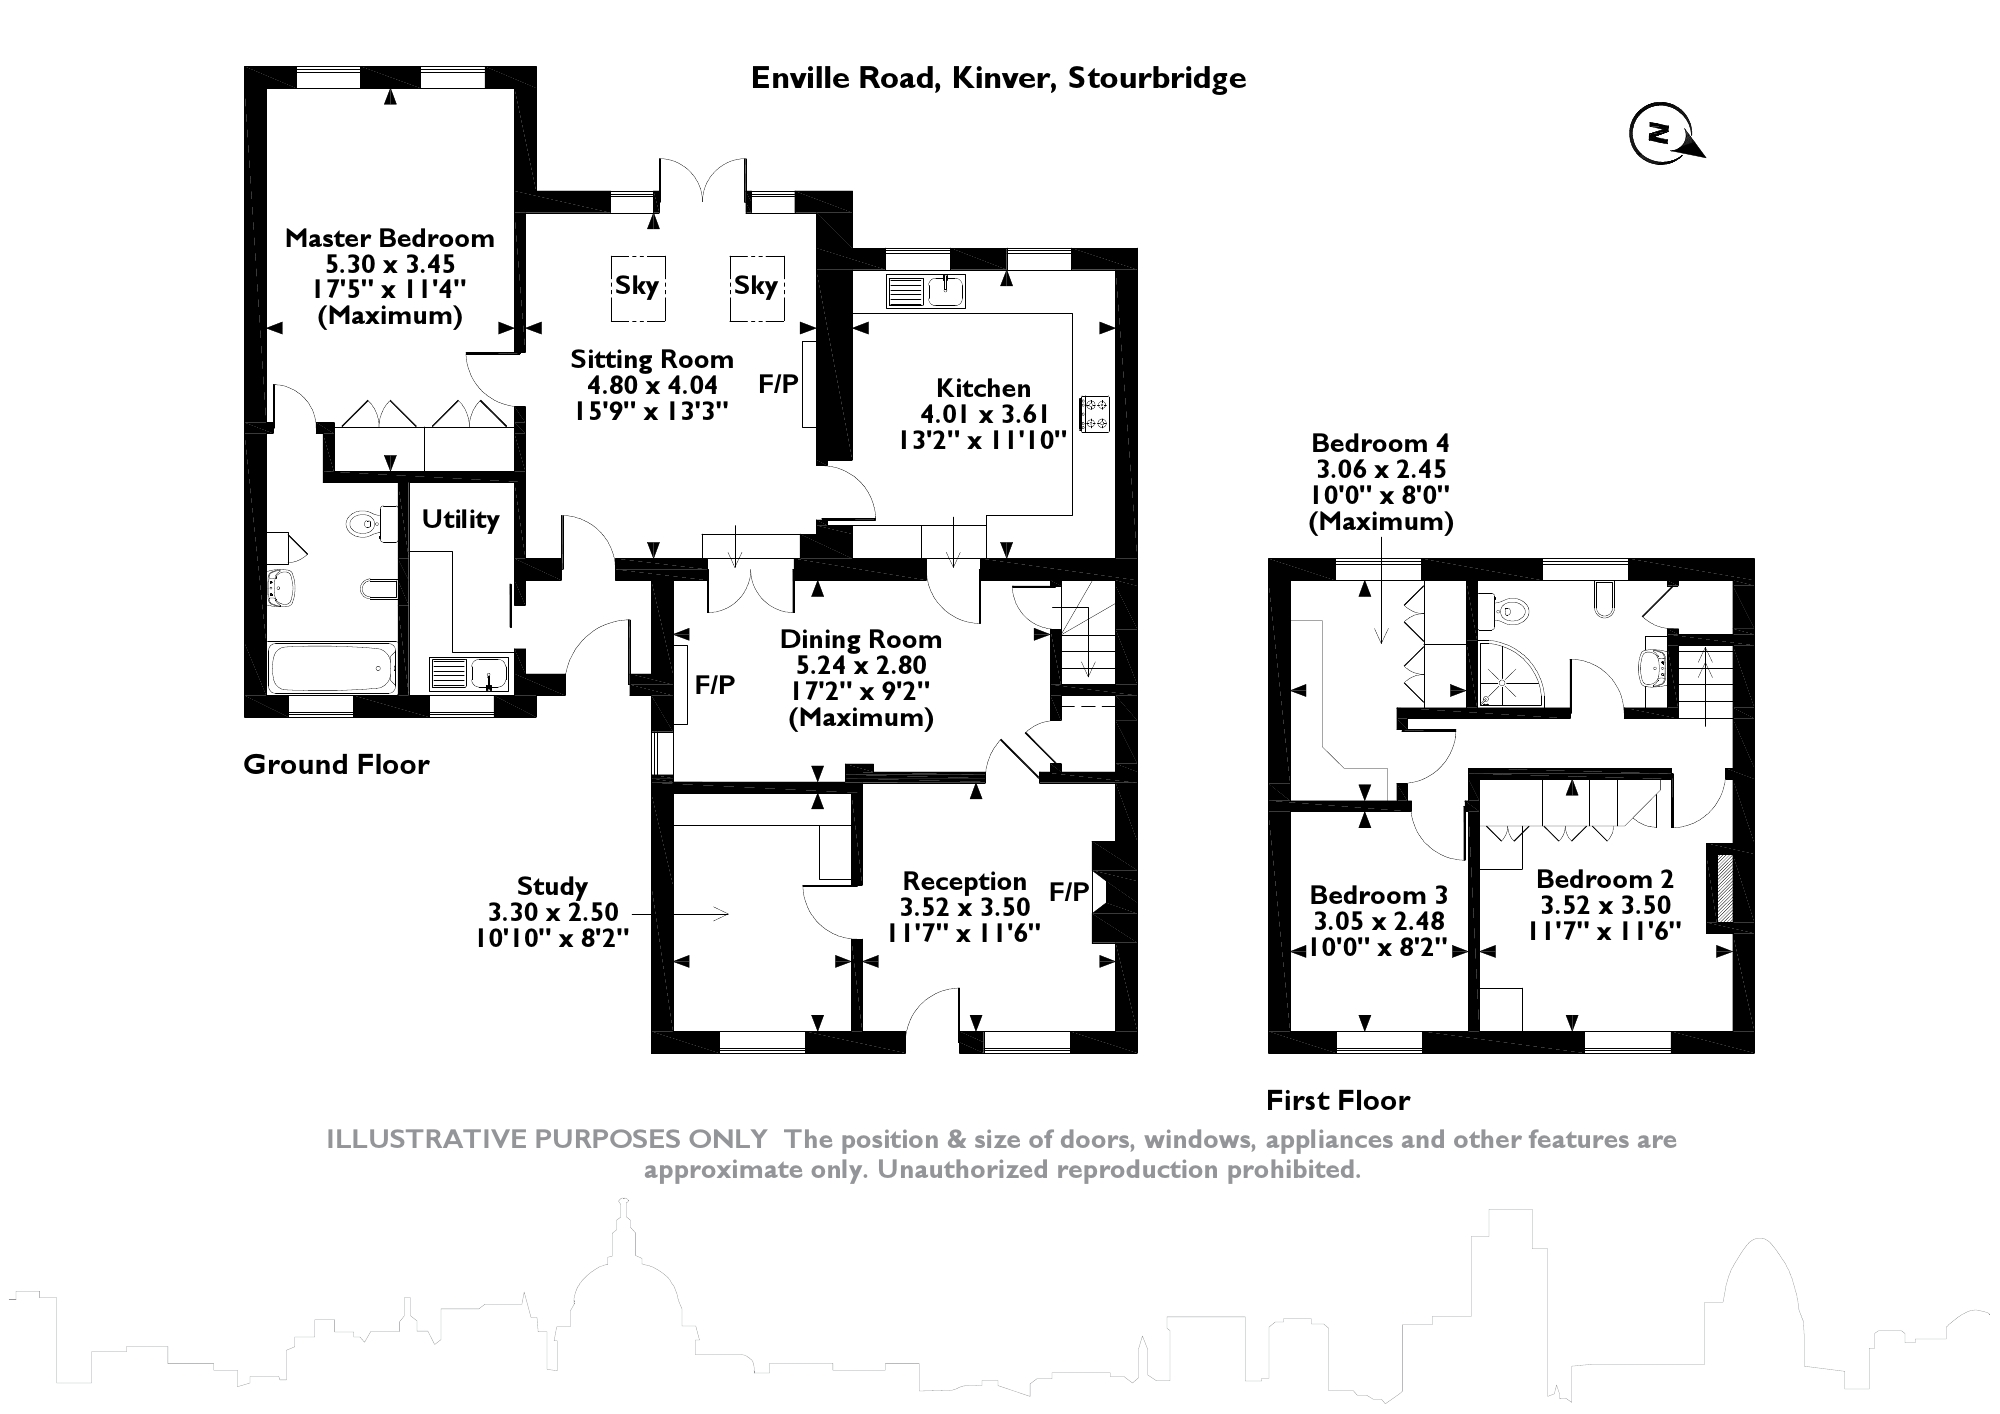 Enville Road, Kinver, Stourbridge, DY7 floor plan